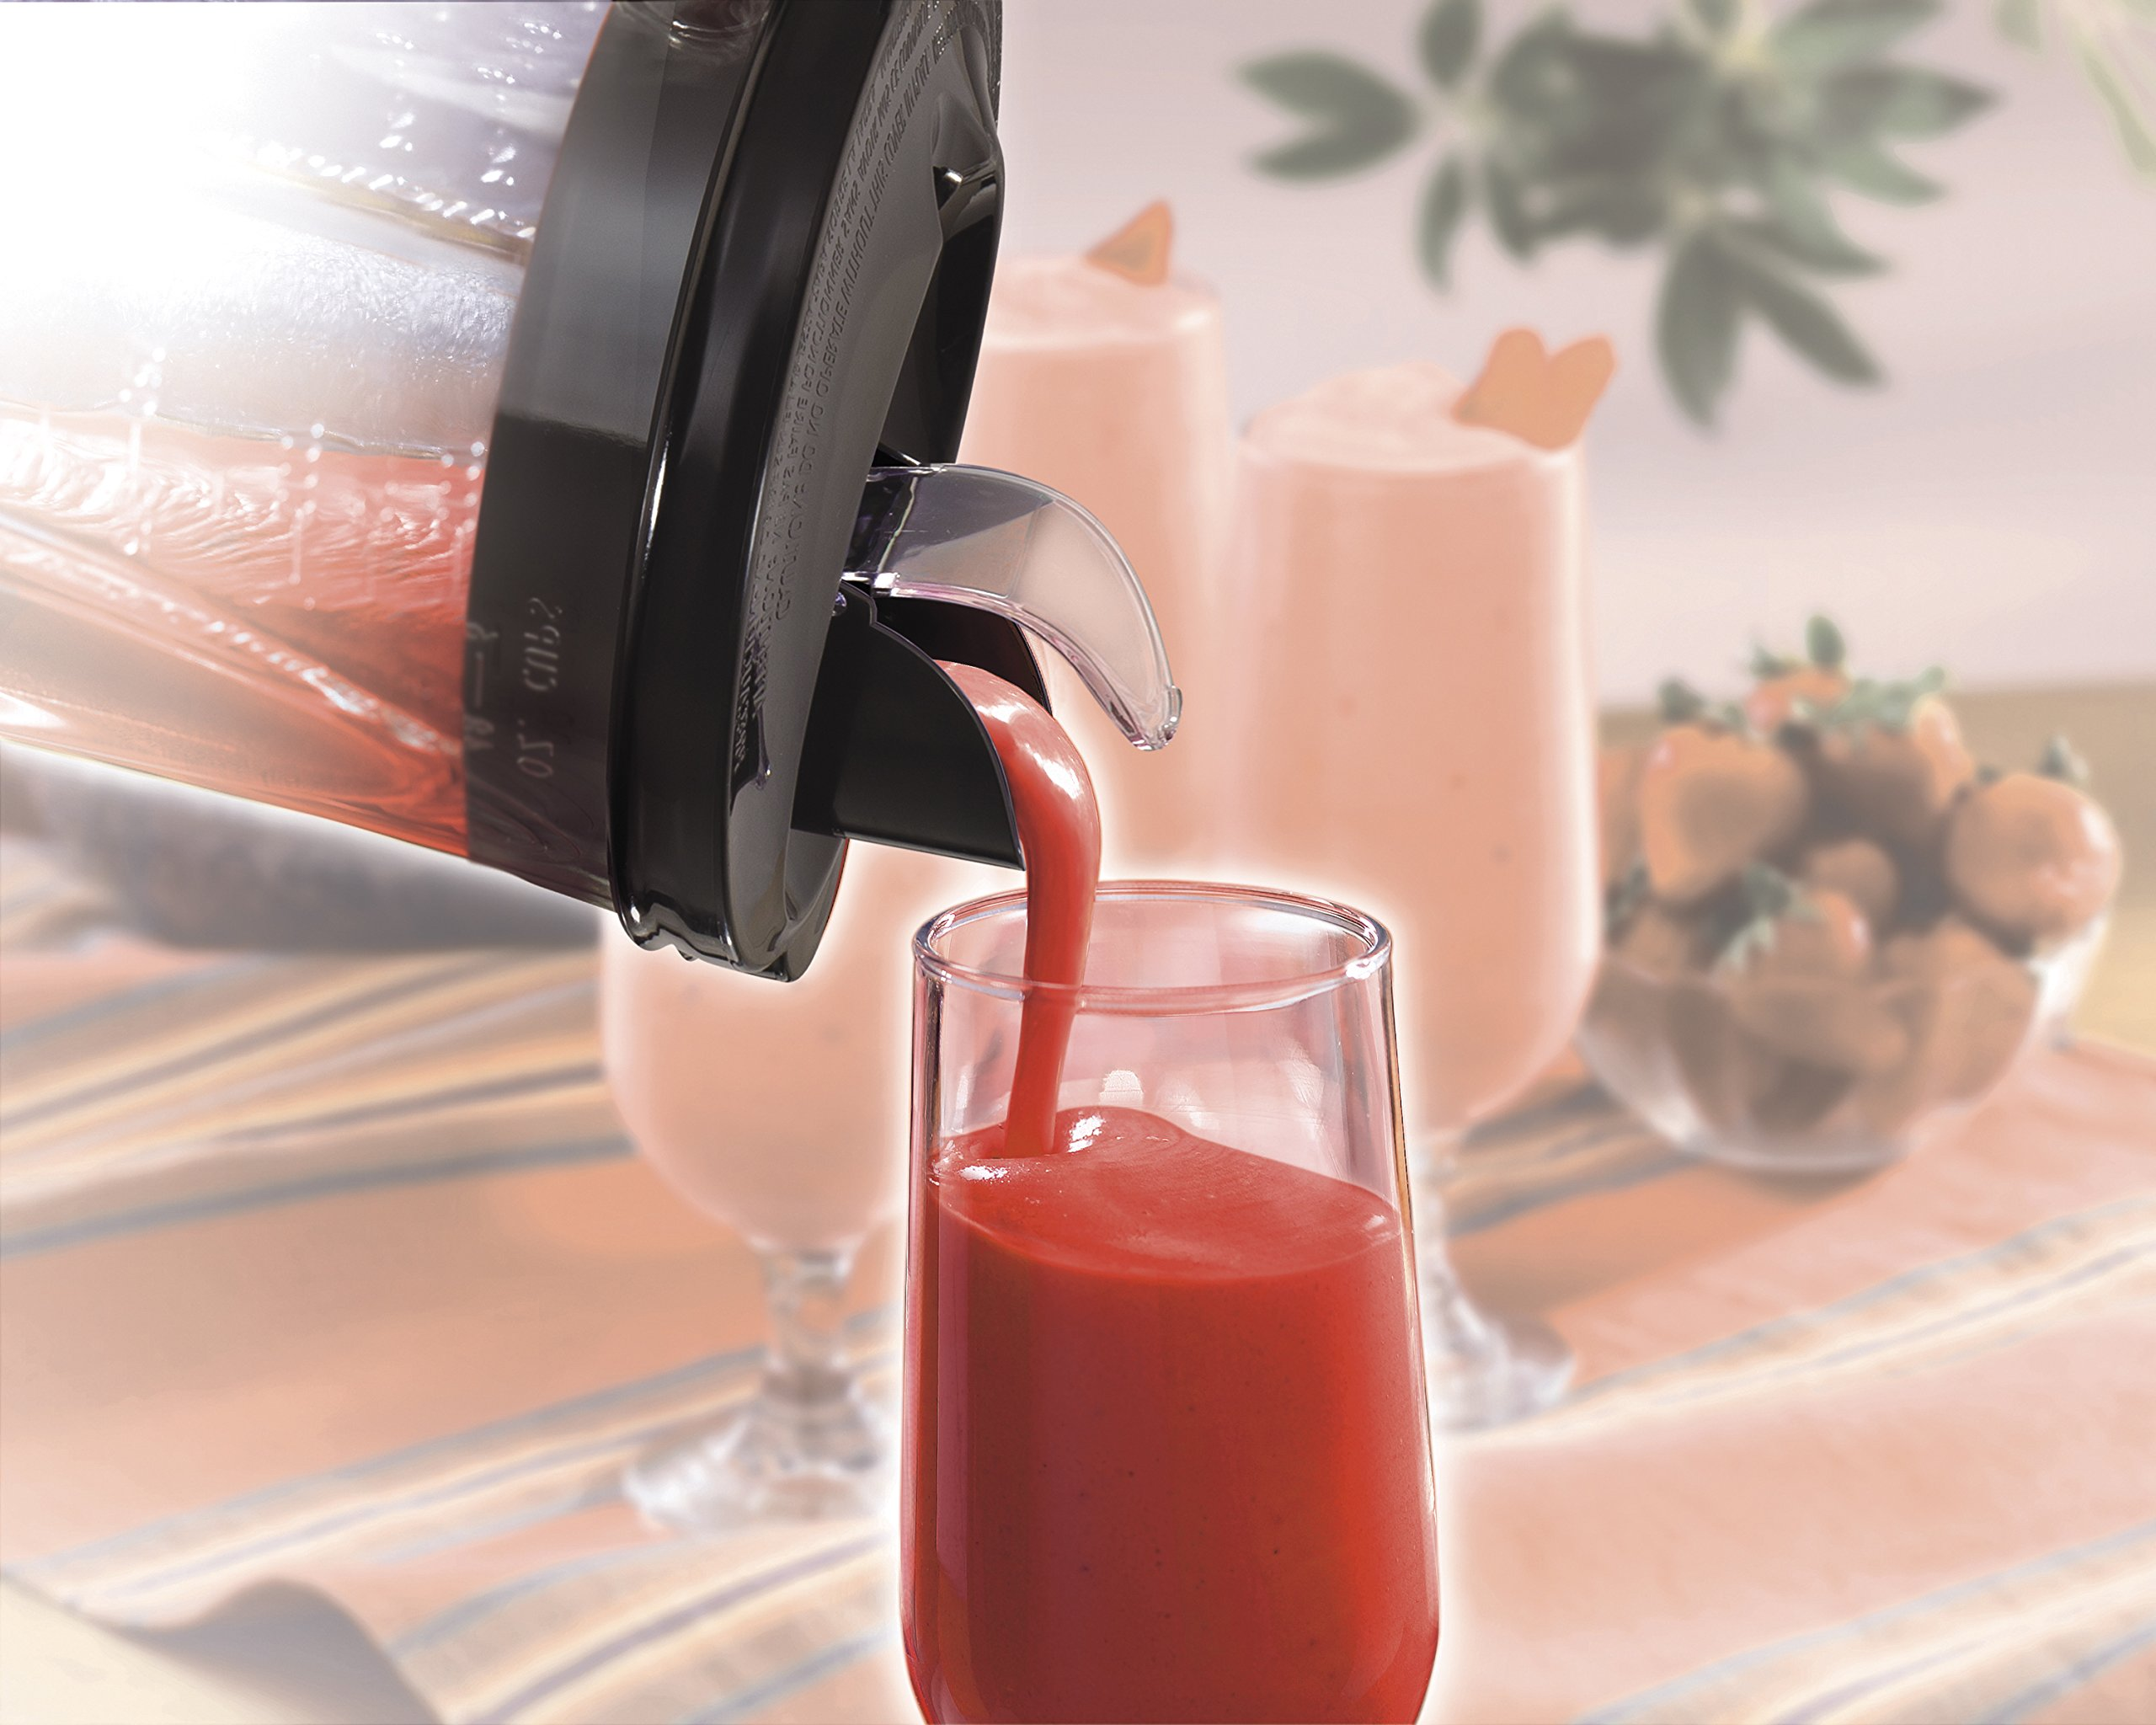 Hamilton Beach (58148A) Blender with Glass Jar, For Shakes & Smoothies, Multi function, Electric (58148A)